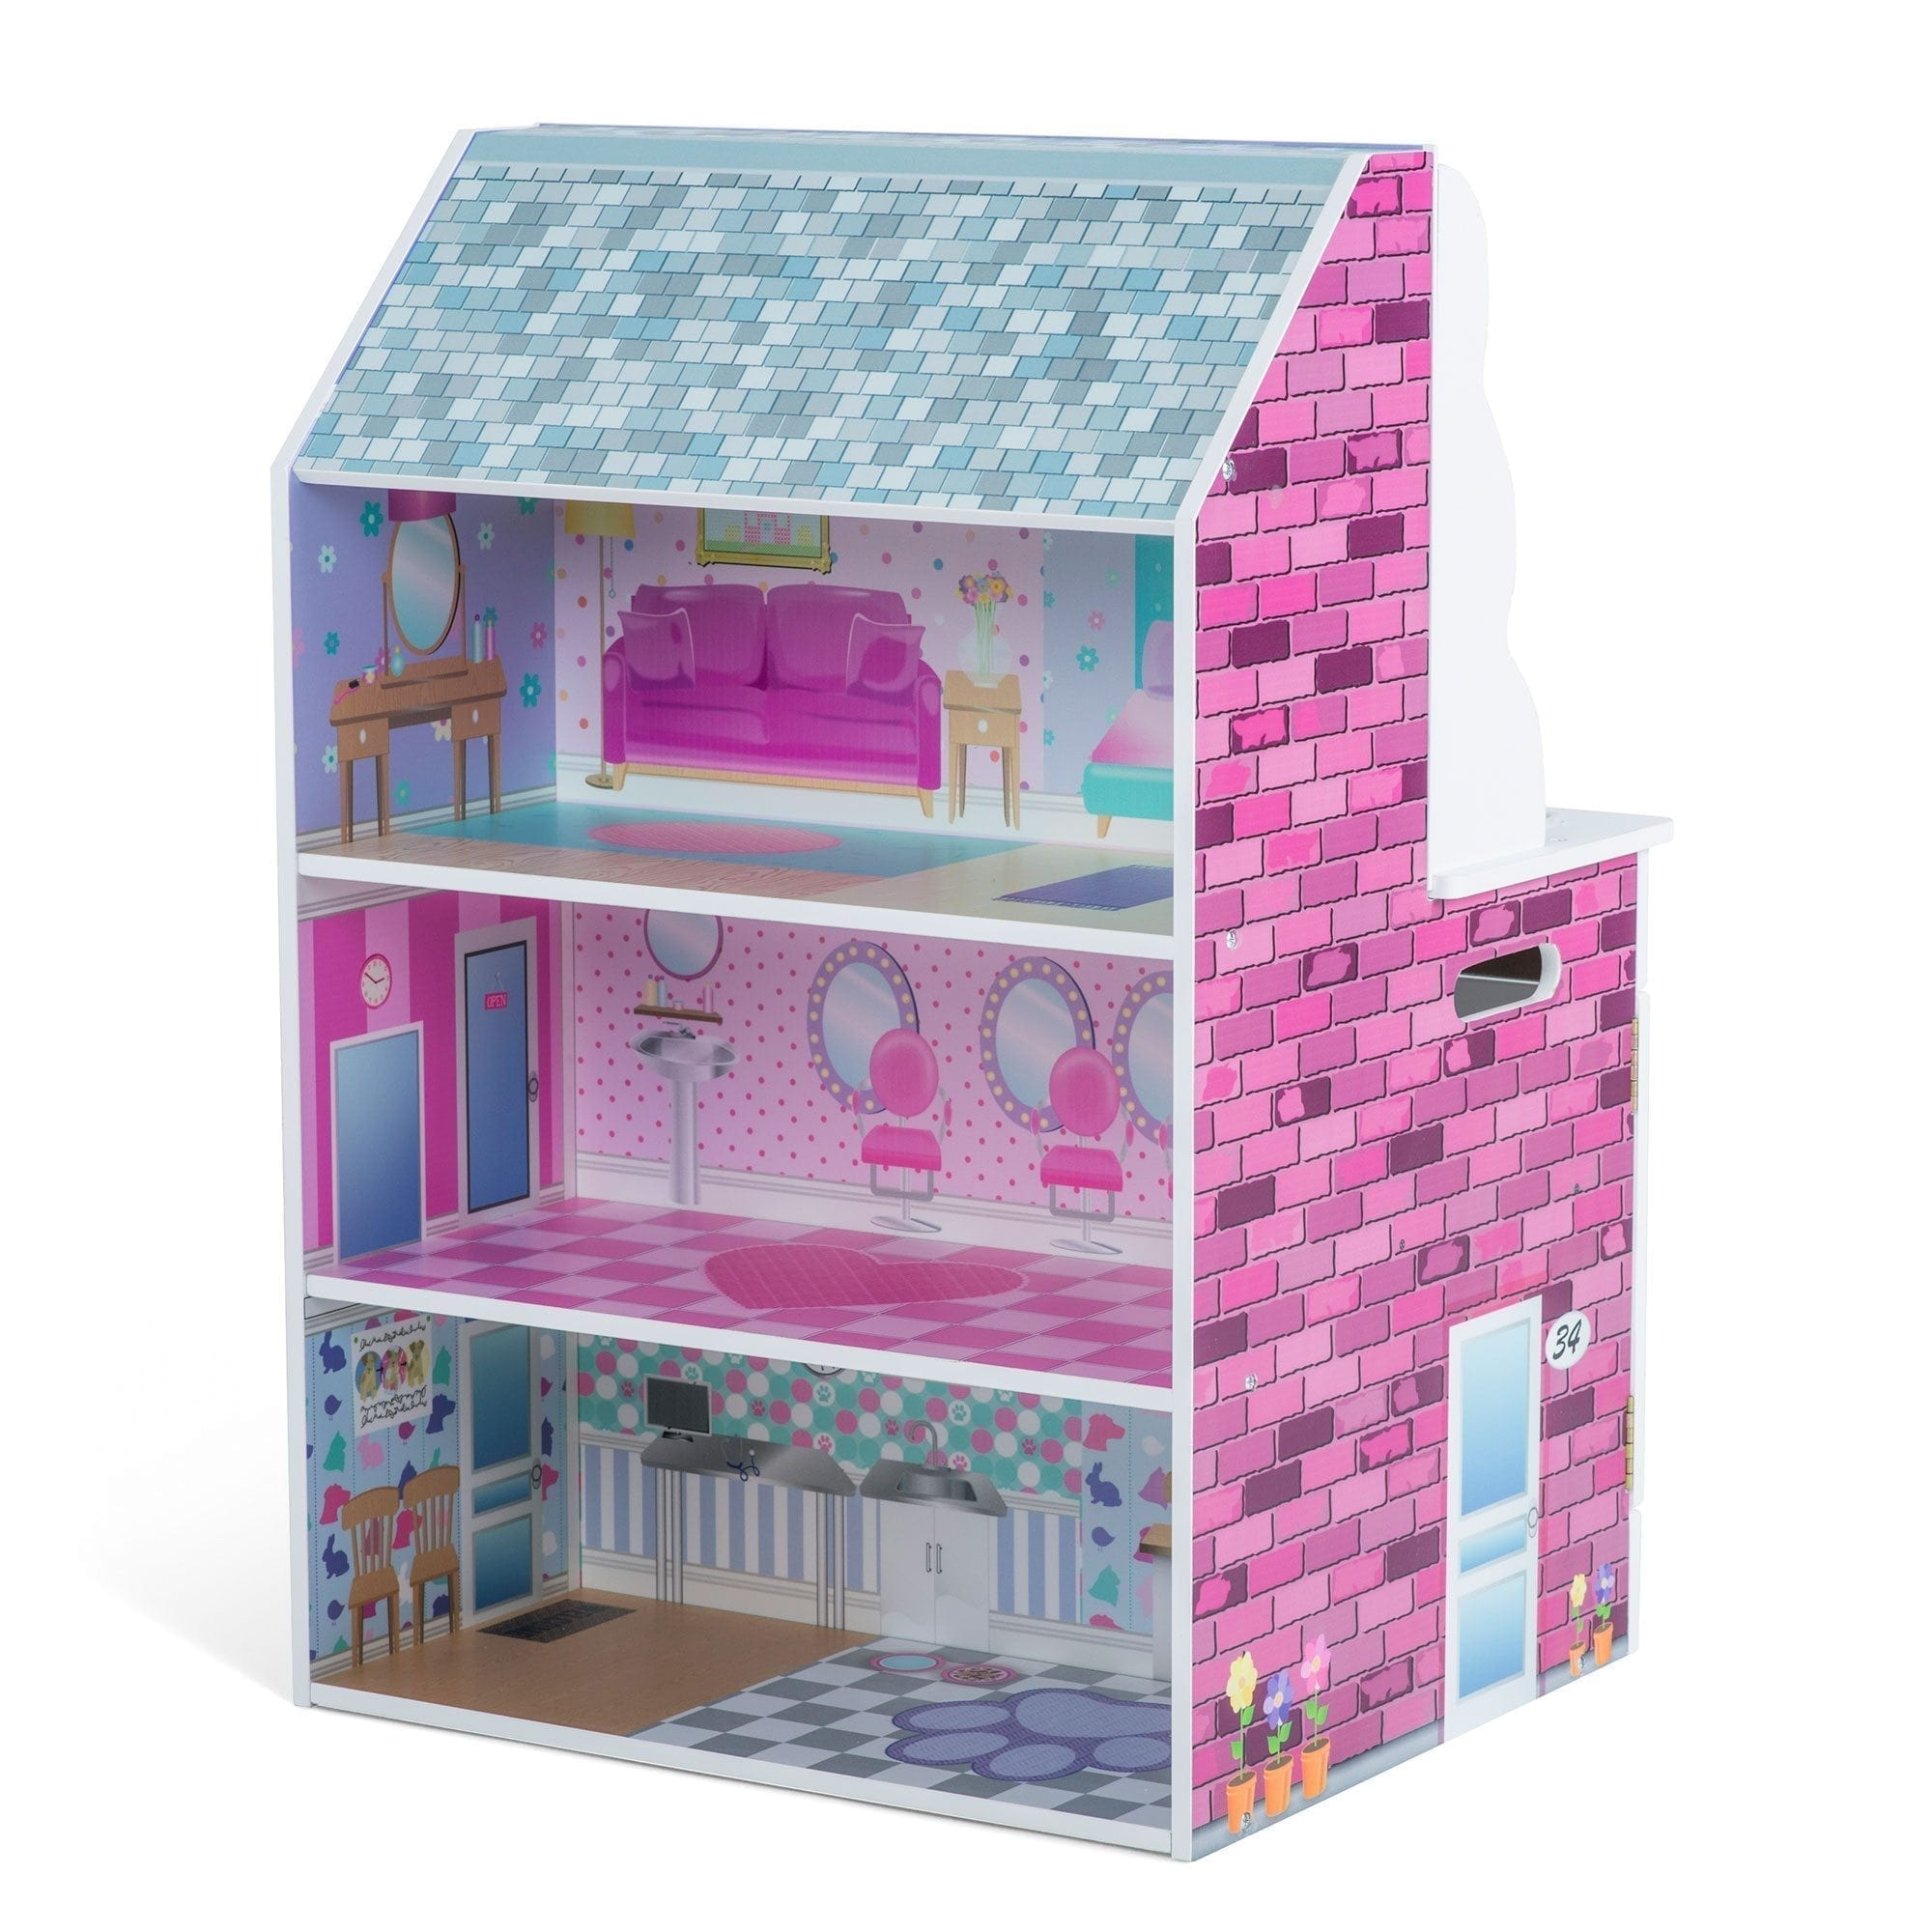 reflection of the doll house